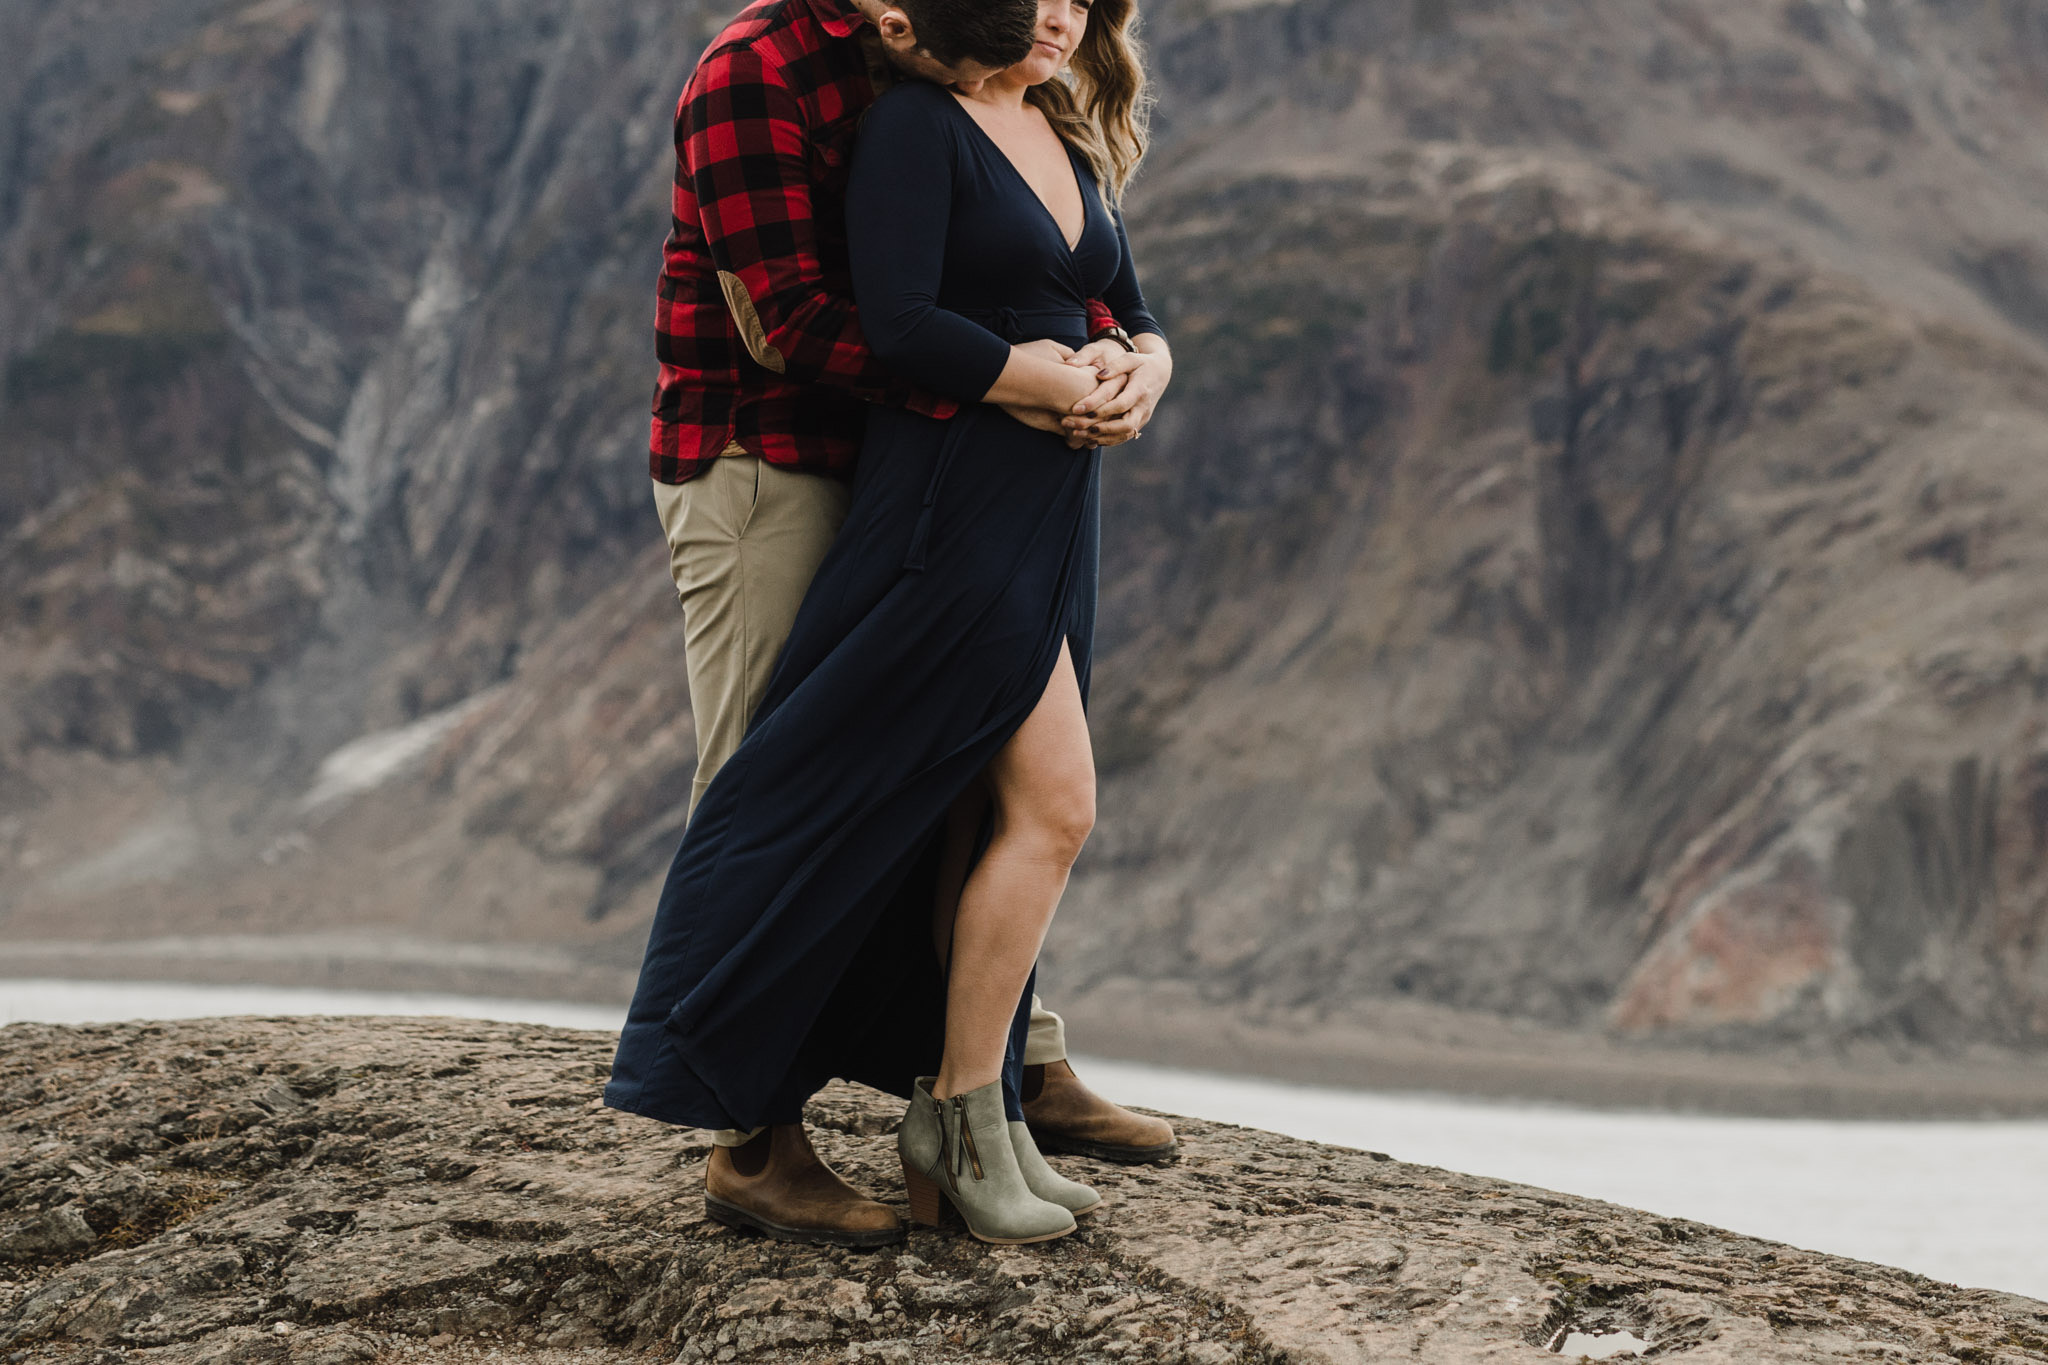 BC Mountain Top Engagement Photographer - kissing on the cliff